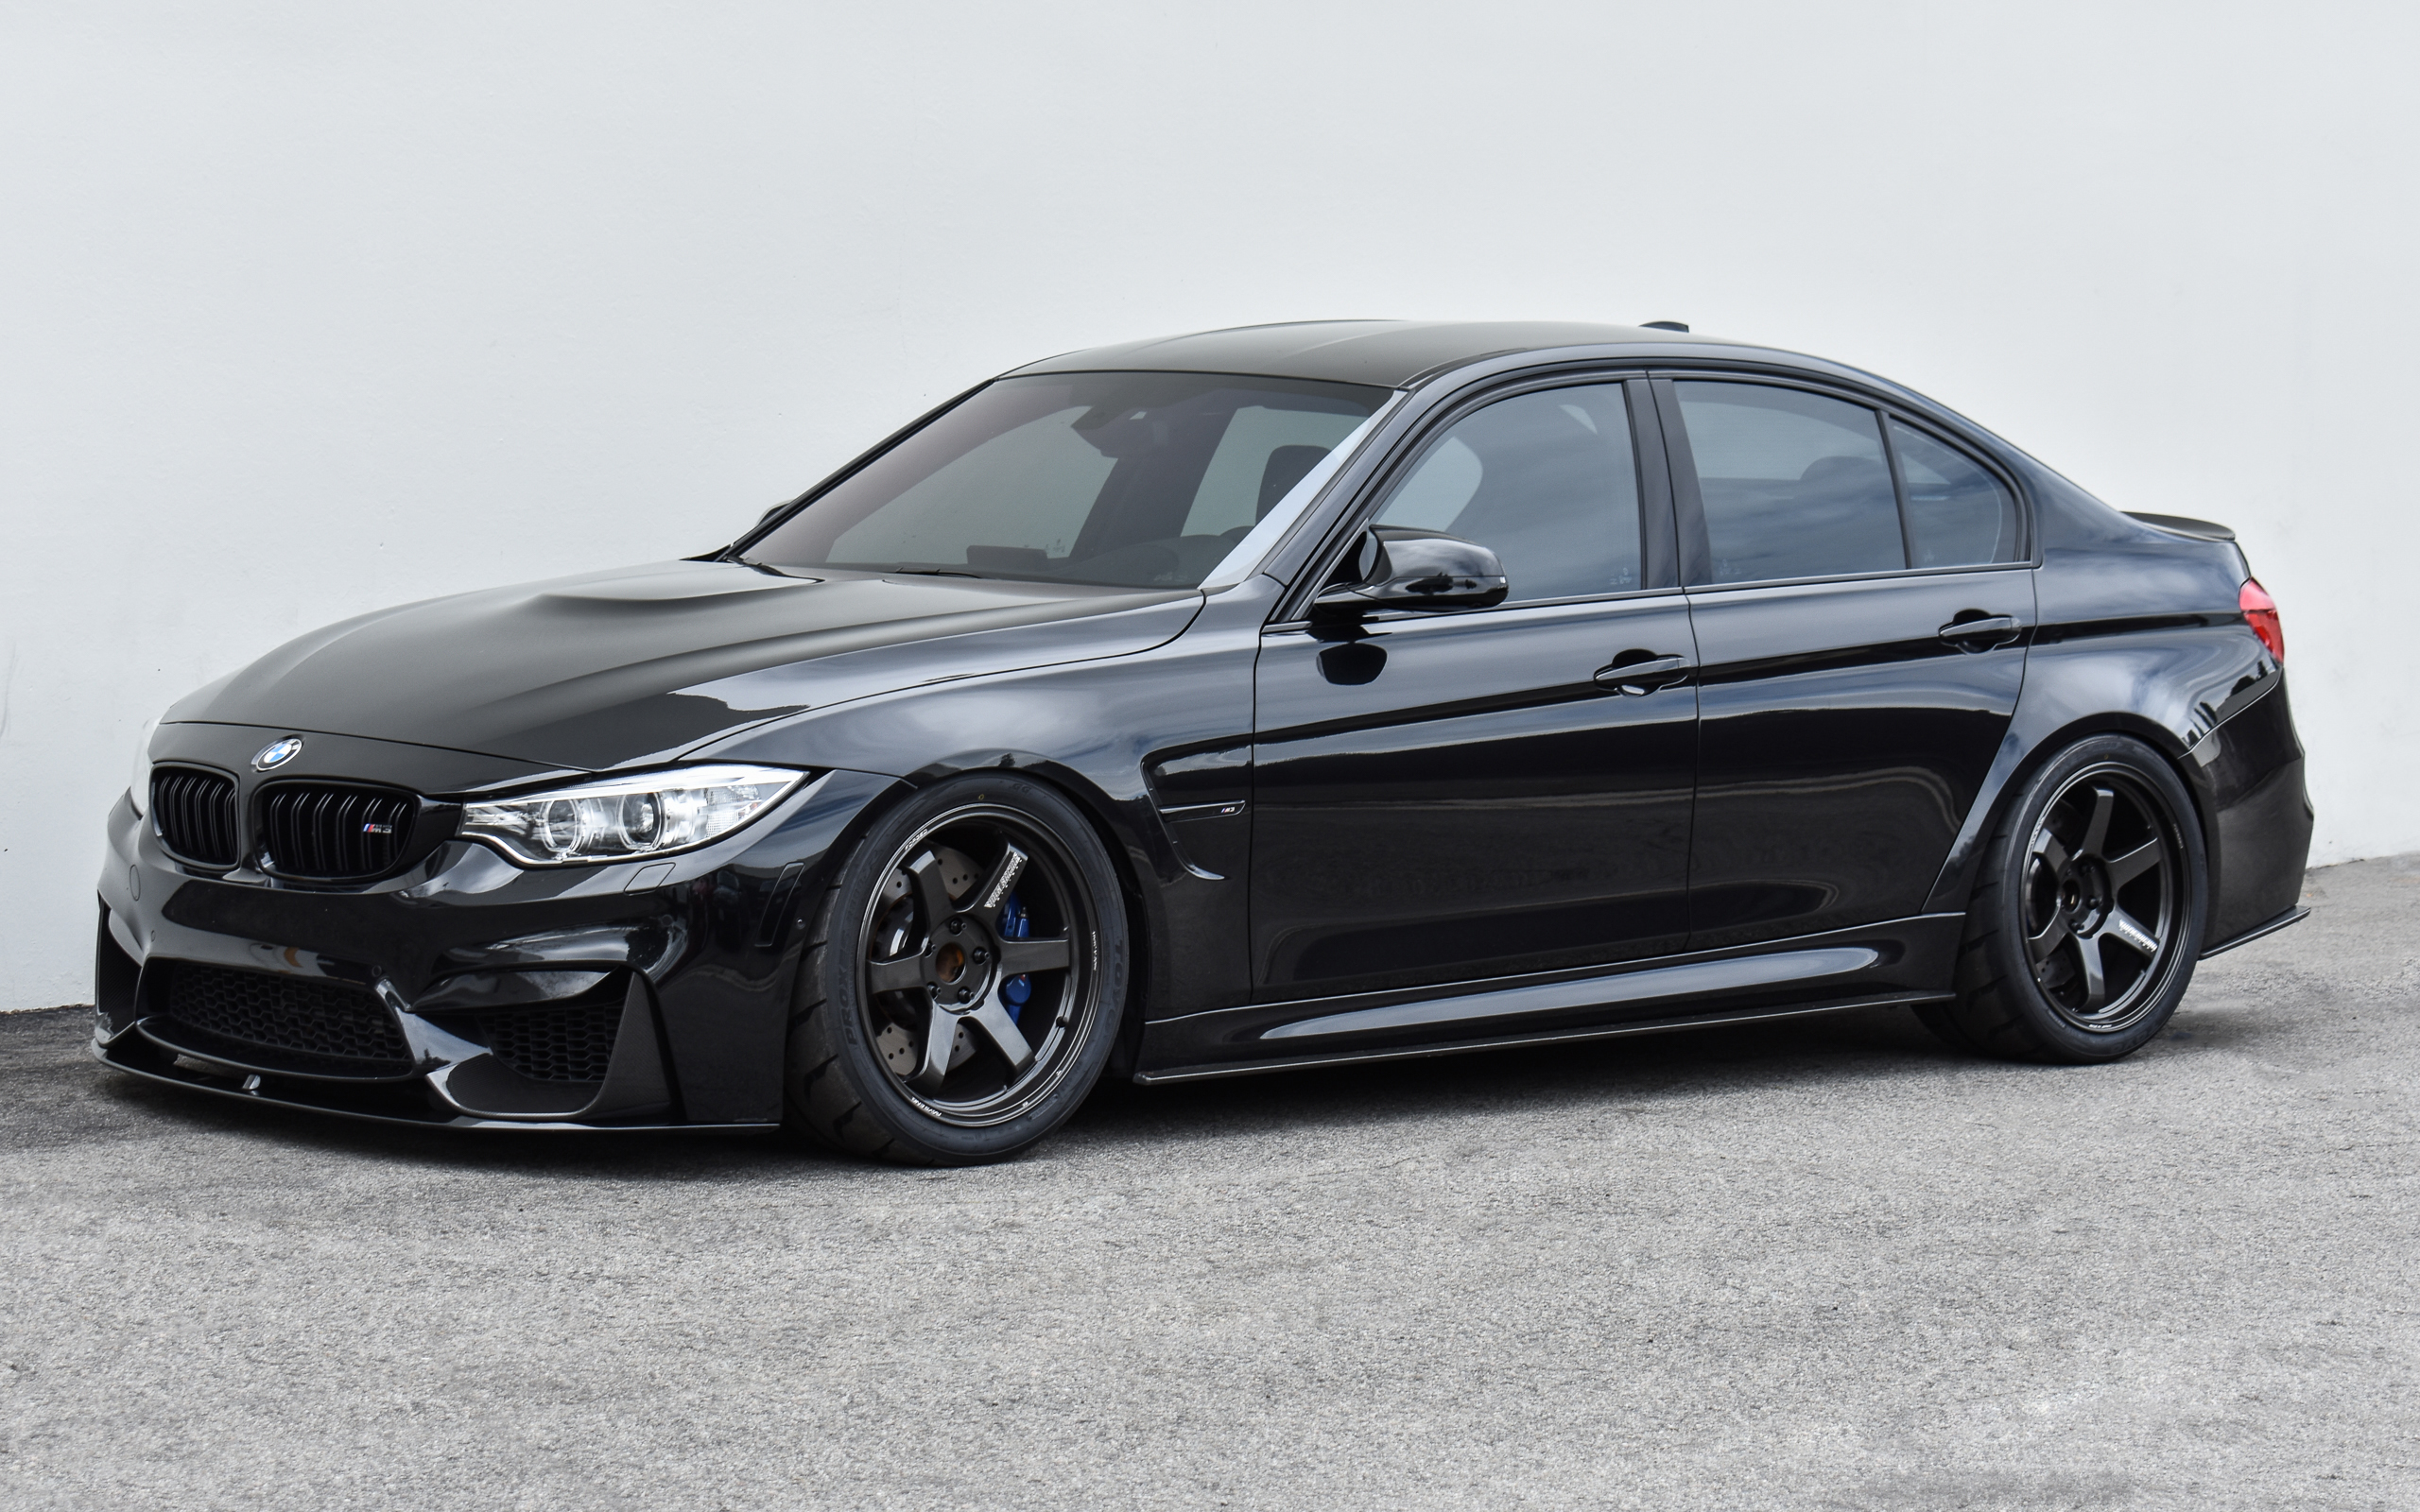 Black Sapphire F80 M3 - Volk Racing TE37 Ultra M-Spec, 3D Design Carbon Rear Diffuser, KW V3 Coilovers